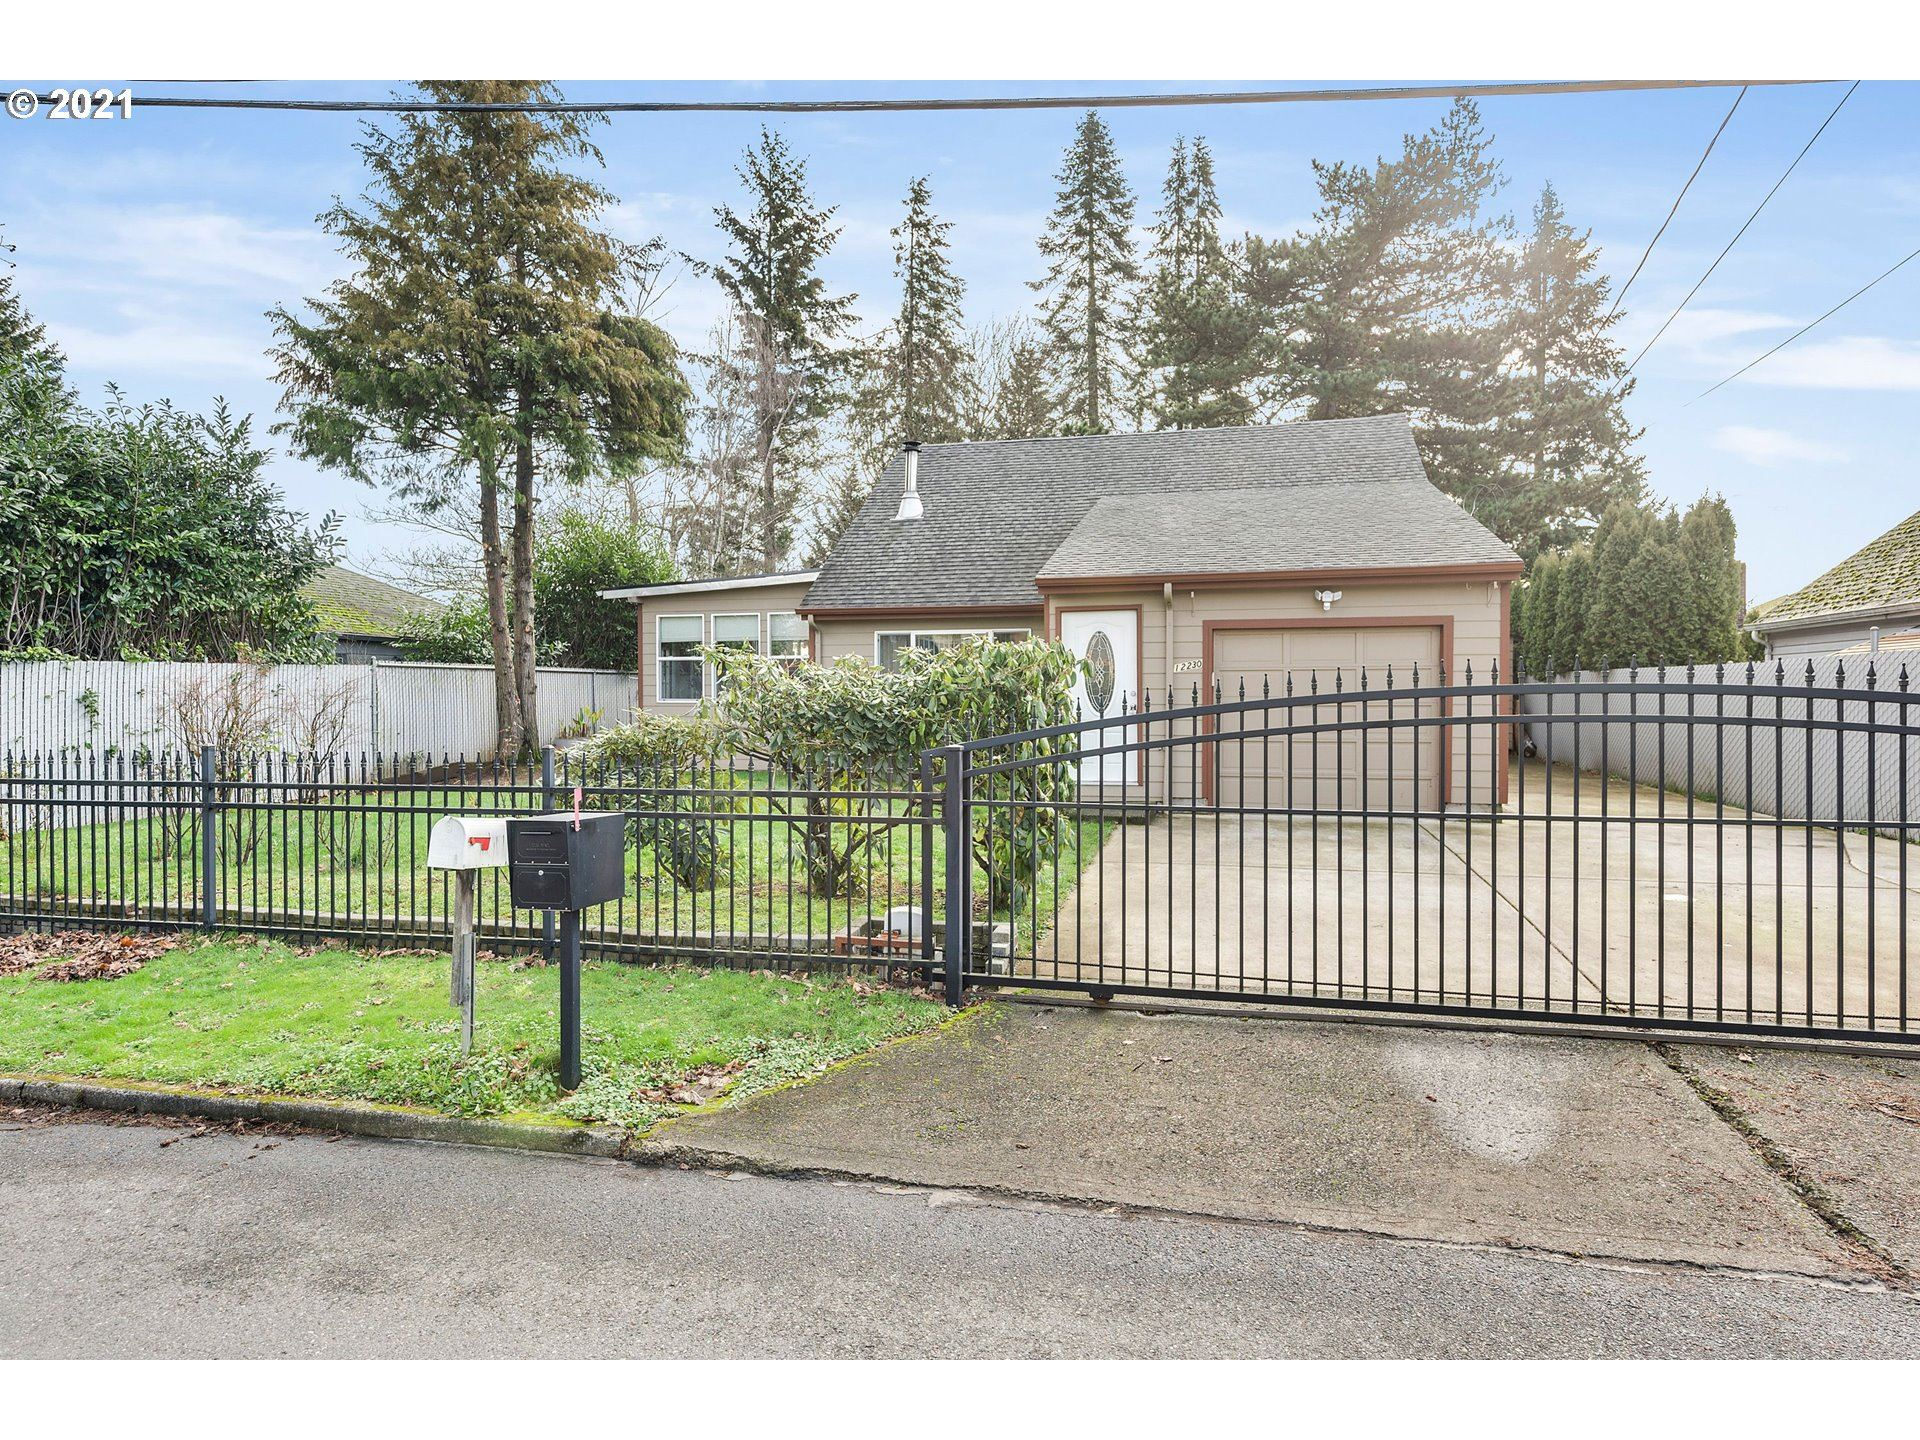 12230 SE LINCOLN ST, Portland, OR 97233 - MLS#: 21398482